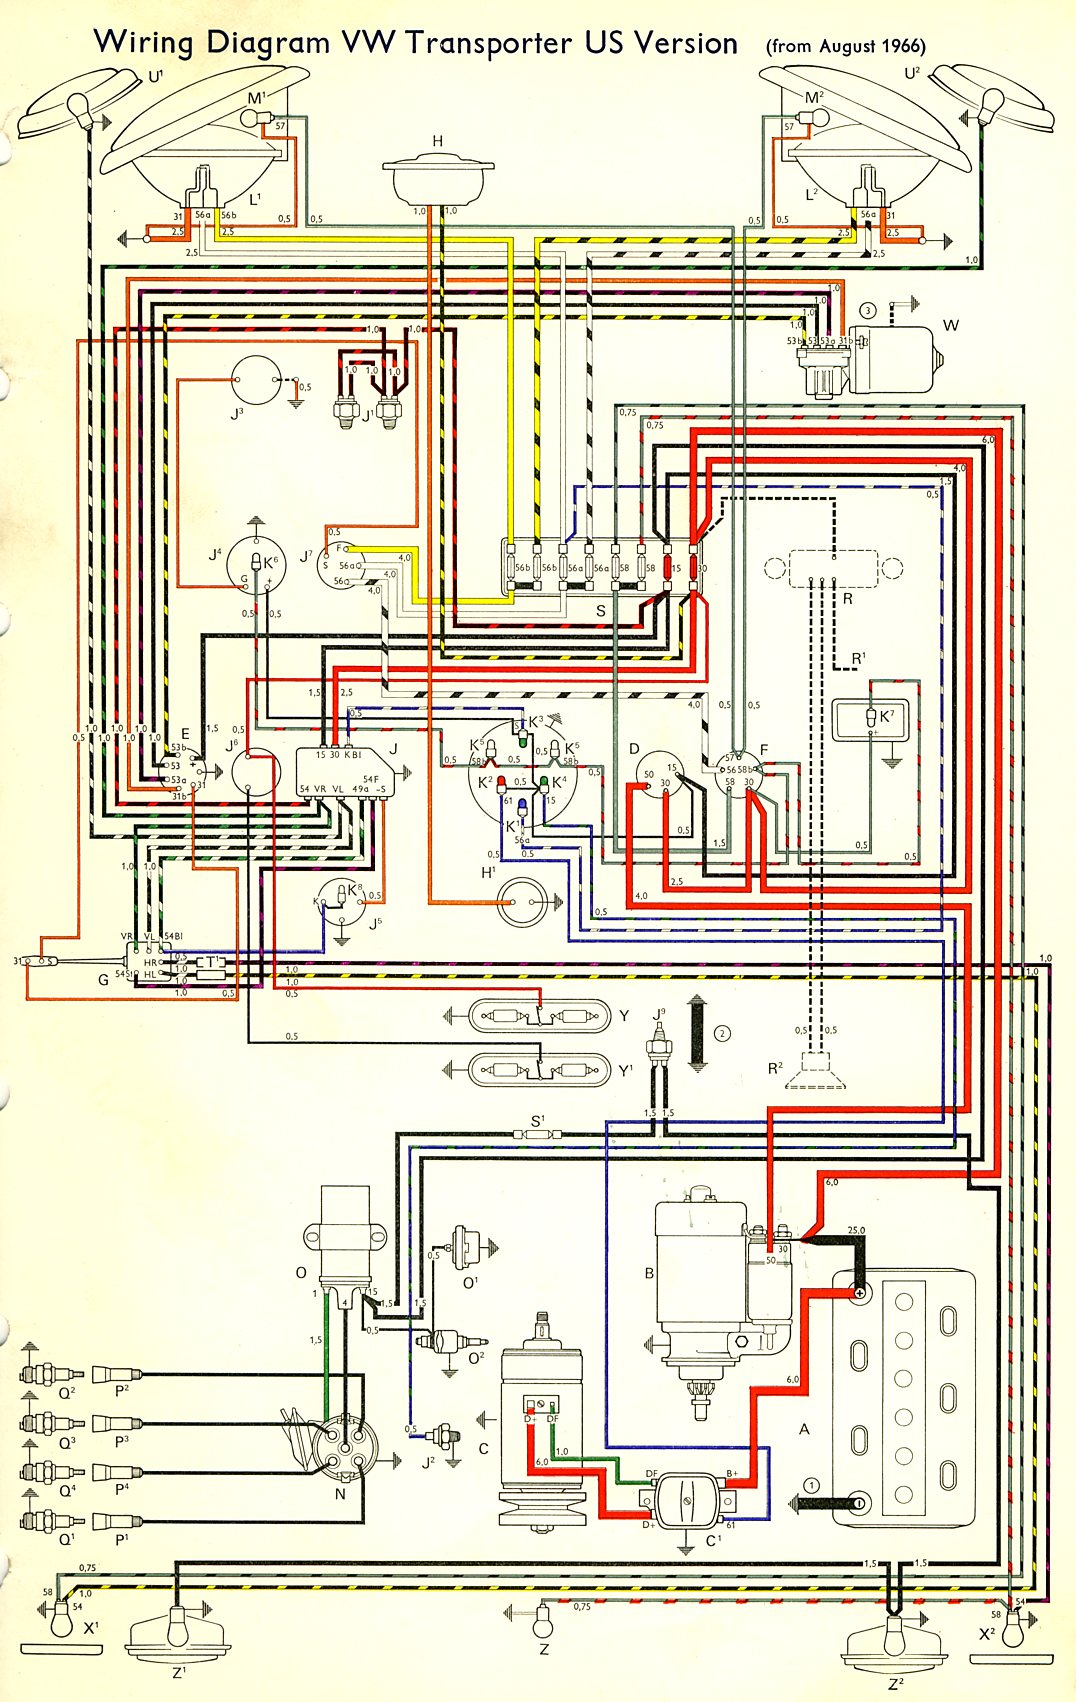 bus_67_USA 1967 bus wiring diagram (usa) thegoldenbug com 1971 vw bus wiring diagram at love-stories.co